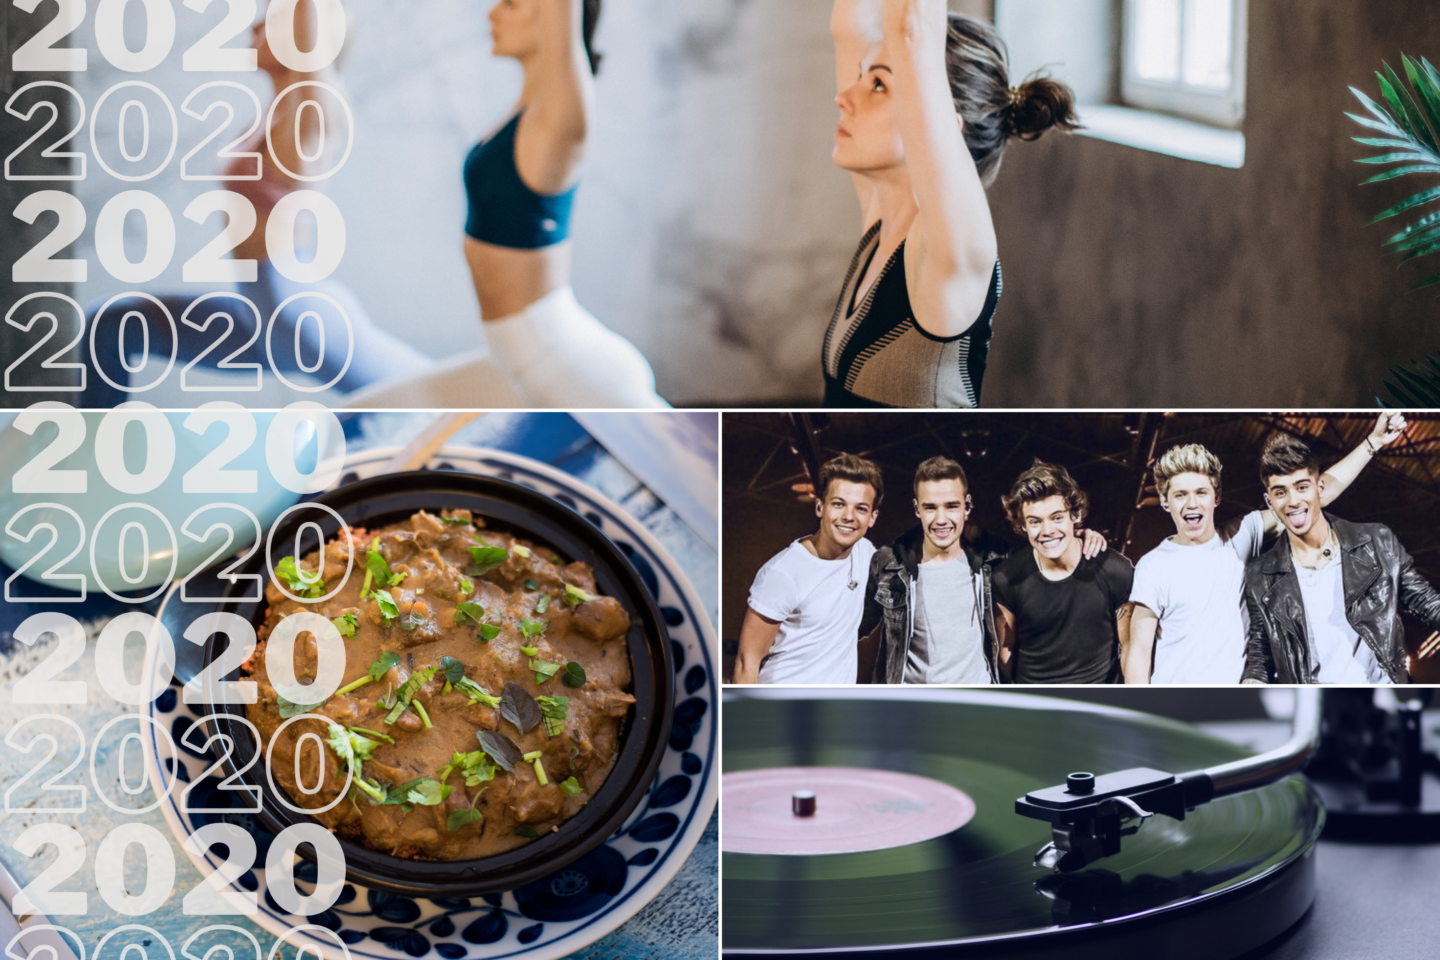 2020, Yoga, Indisches Essen, one direction, Plattenspieler